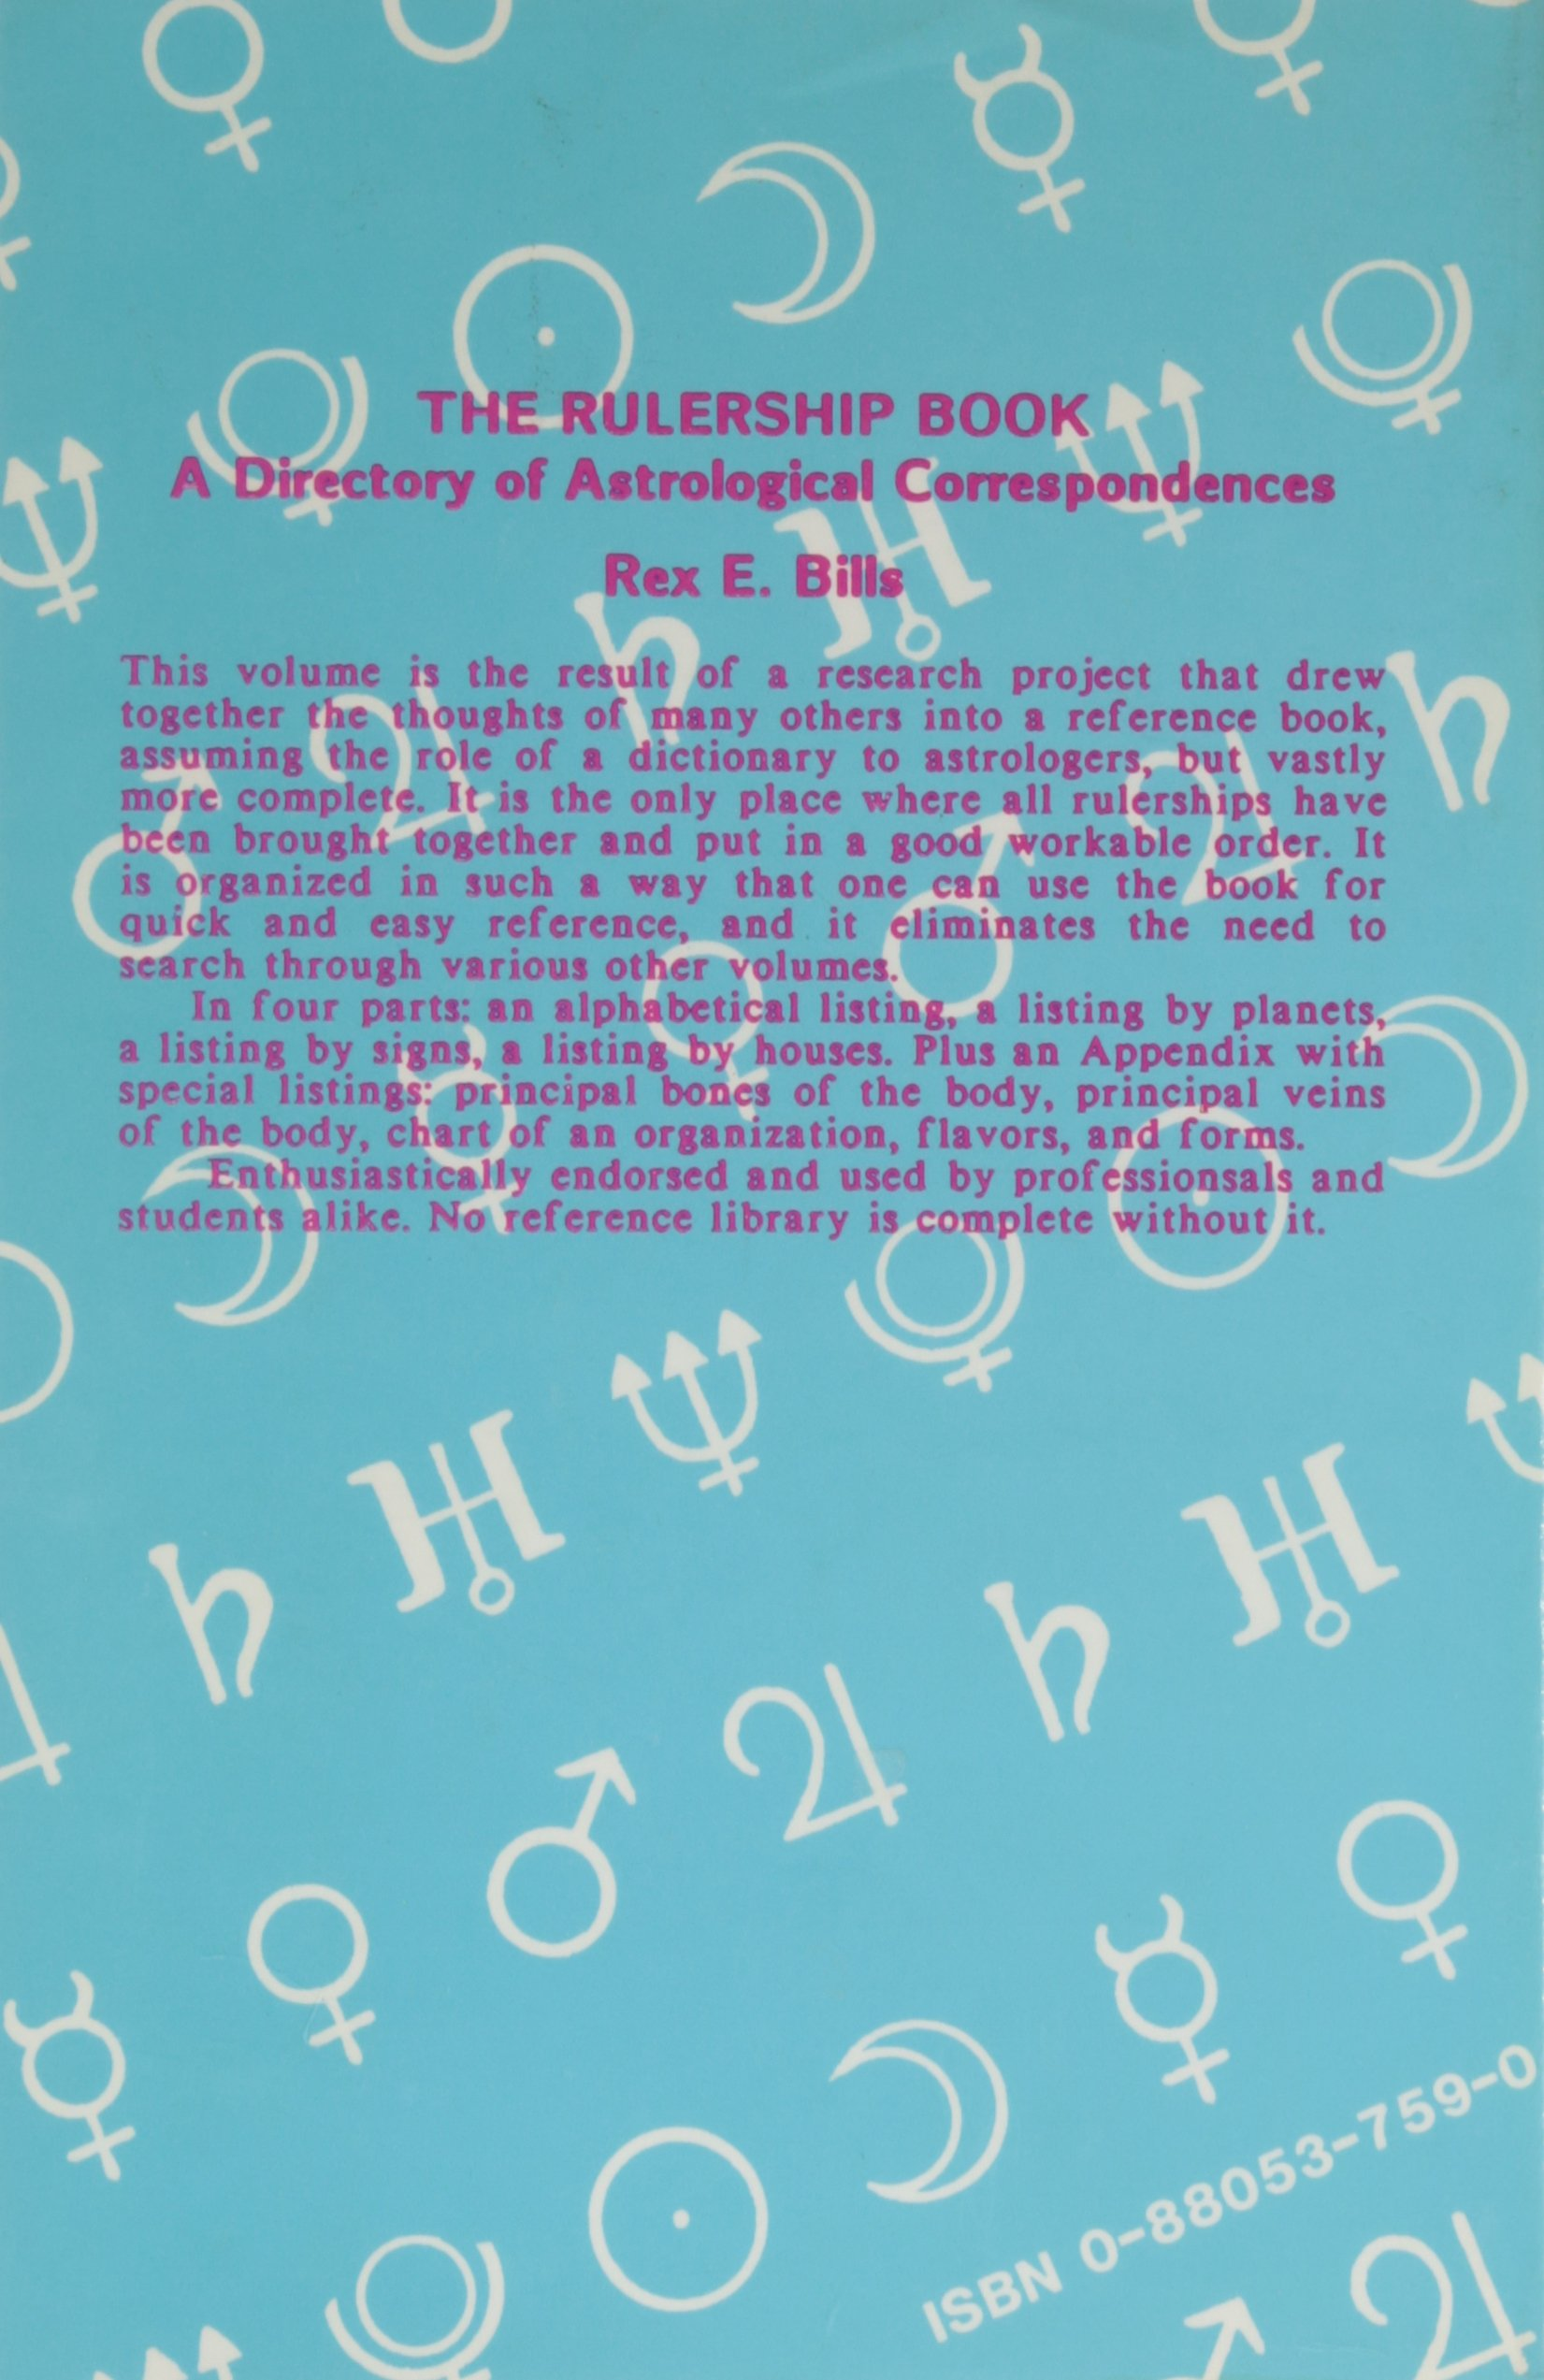 The Rulership Book - A Directory of Astrological